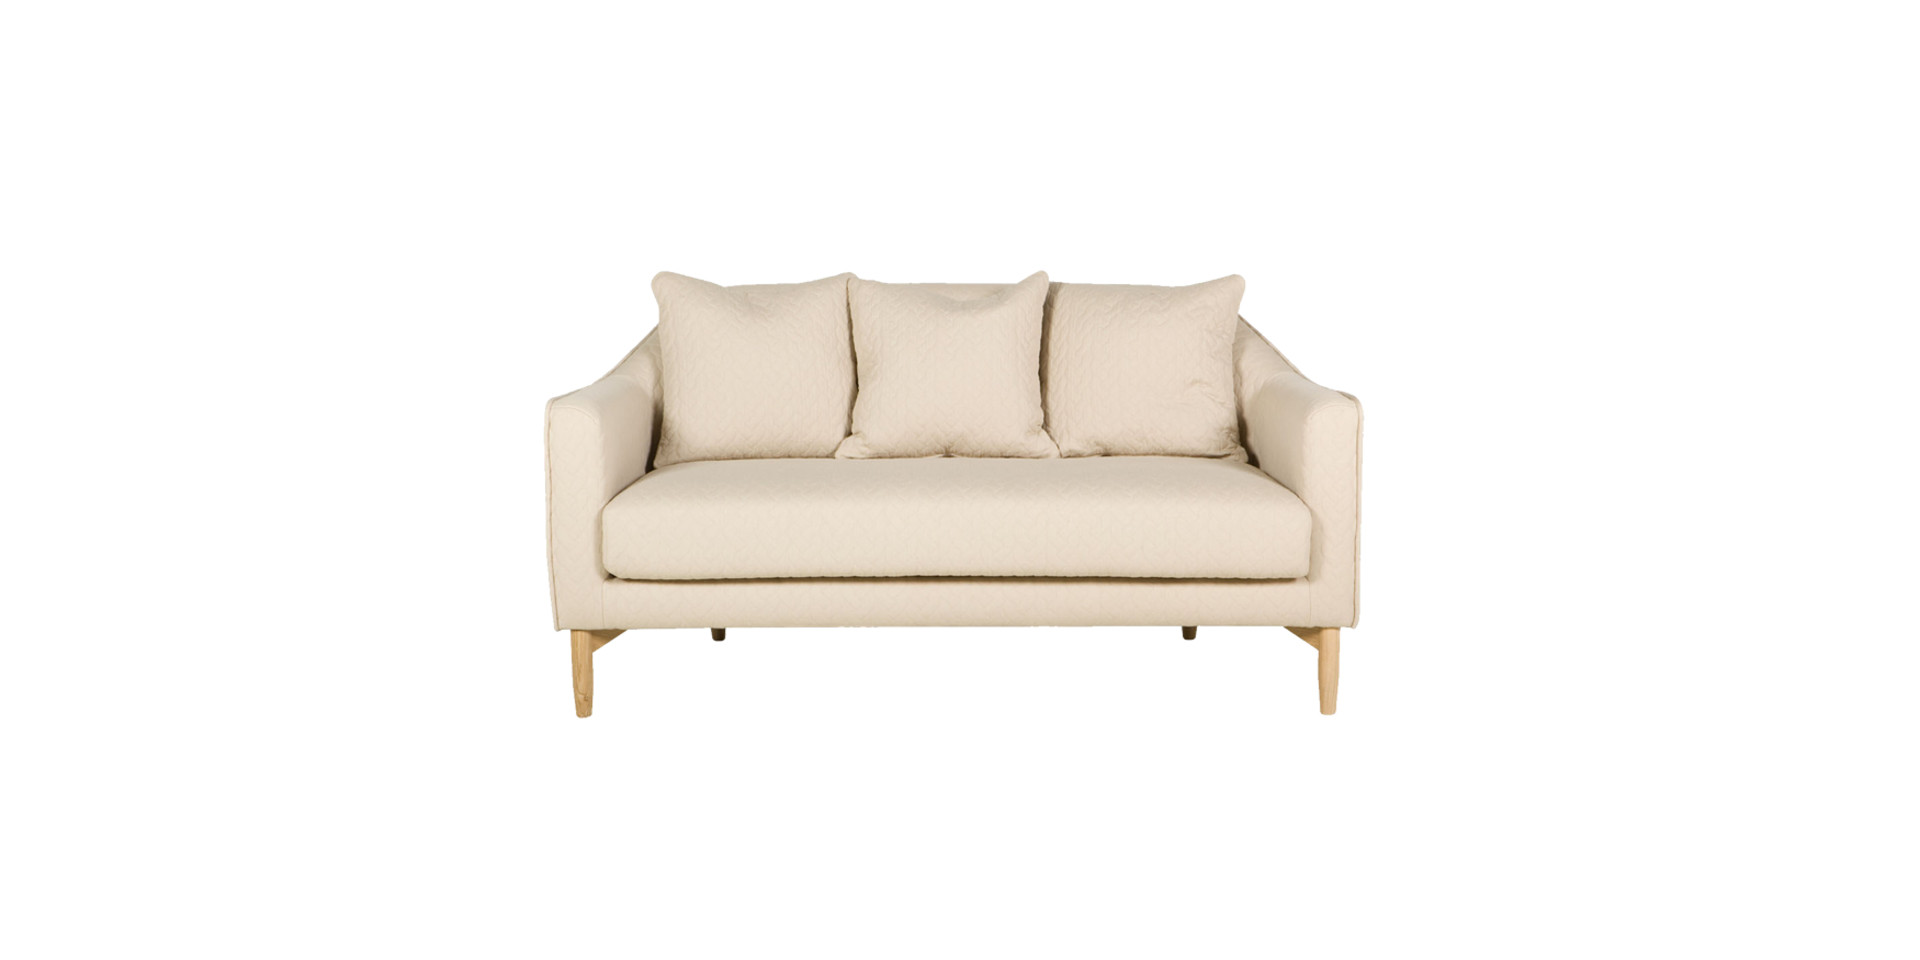 sits-ivy-canape-2seater_zara02_beige_1